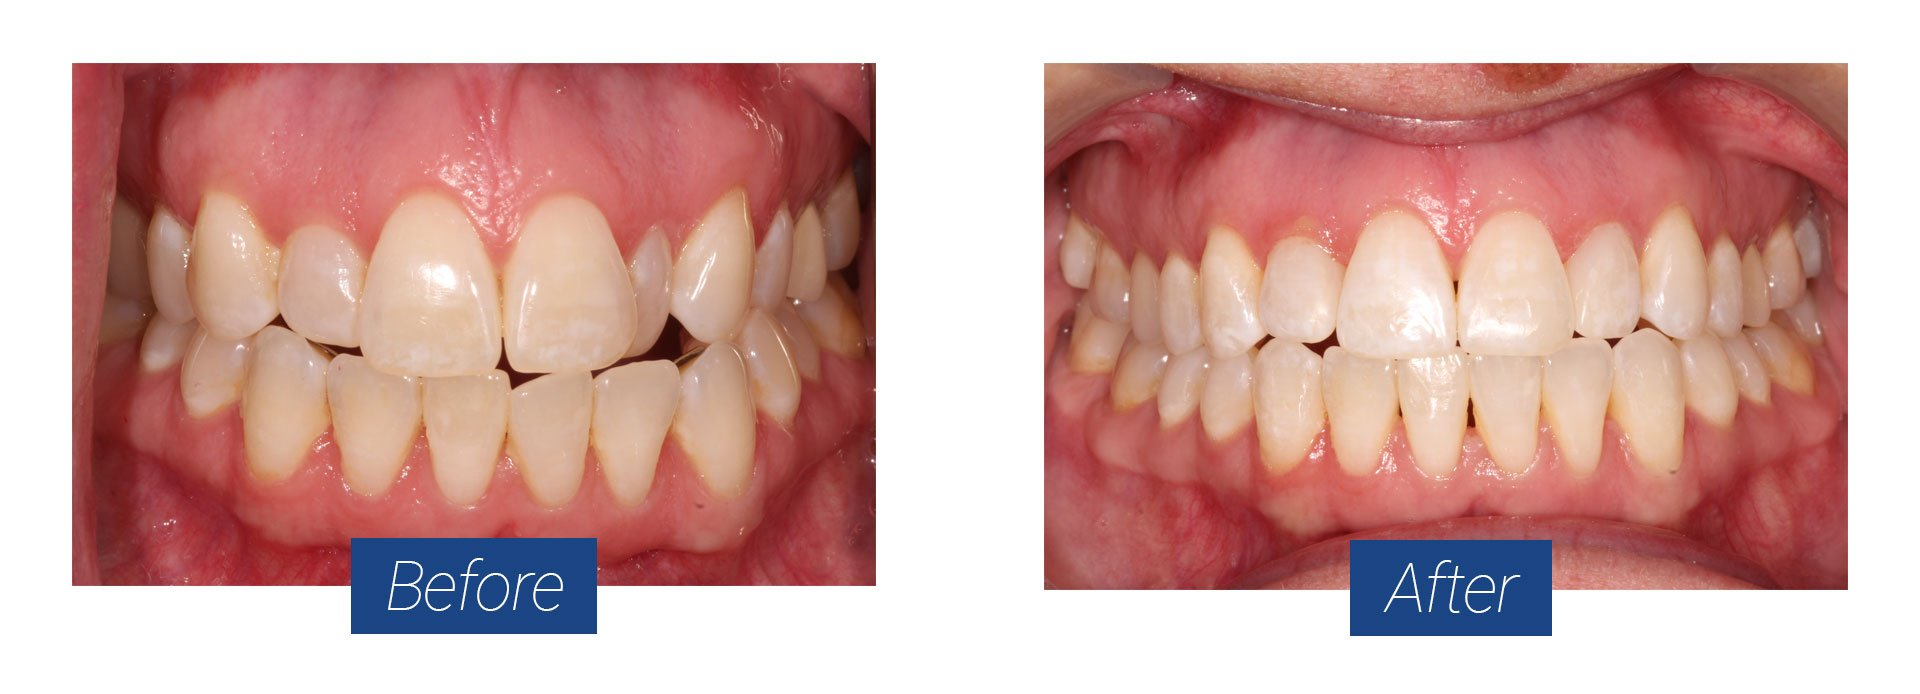 Invisalign Before and After 1 in Hagerstown MD